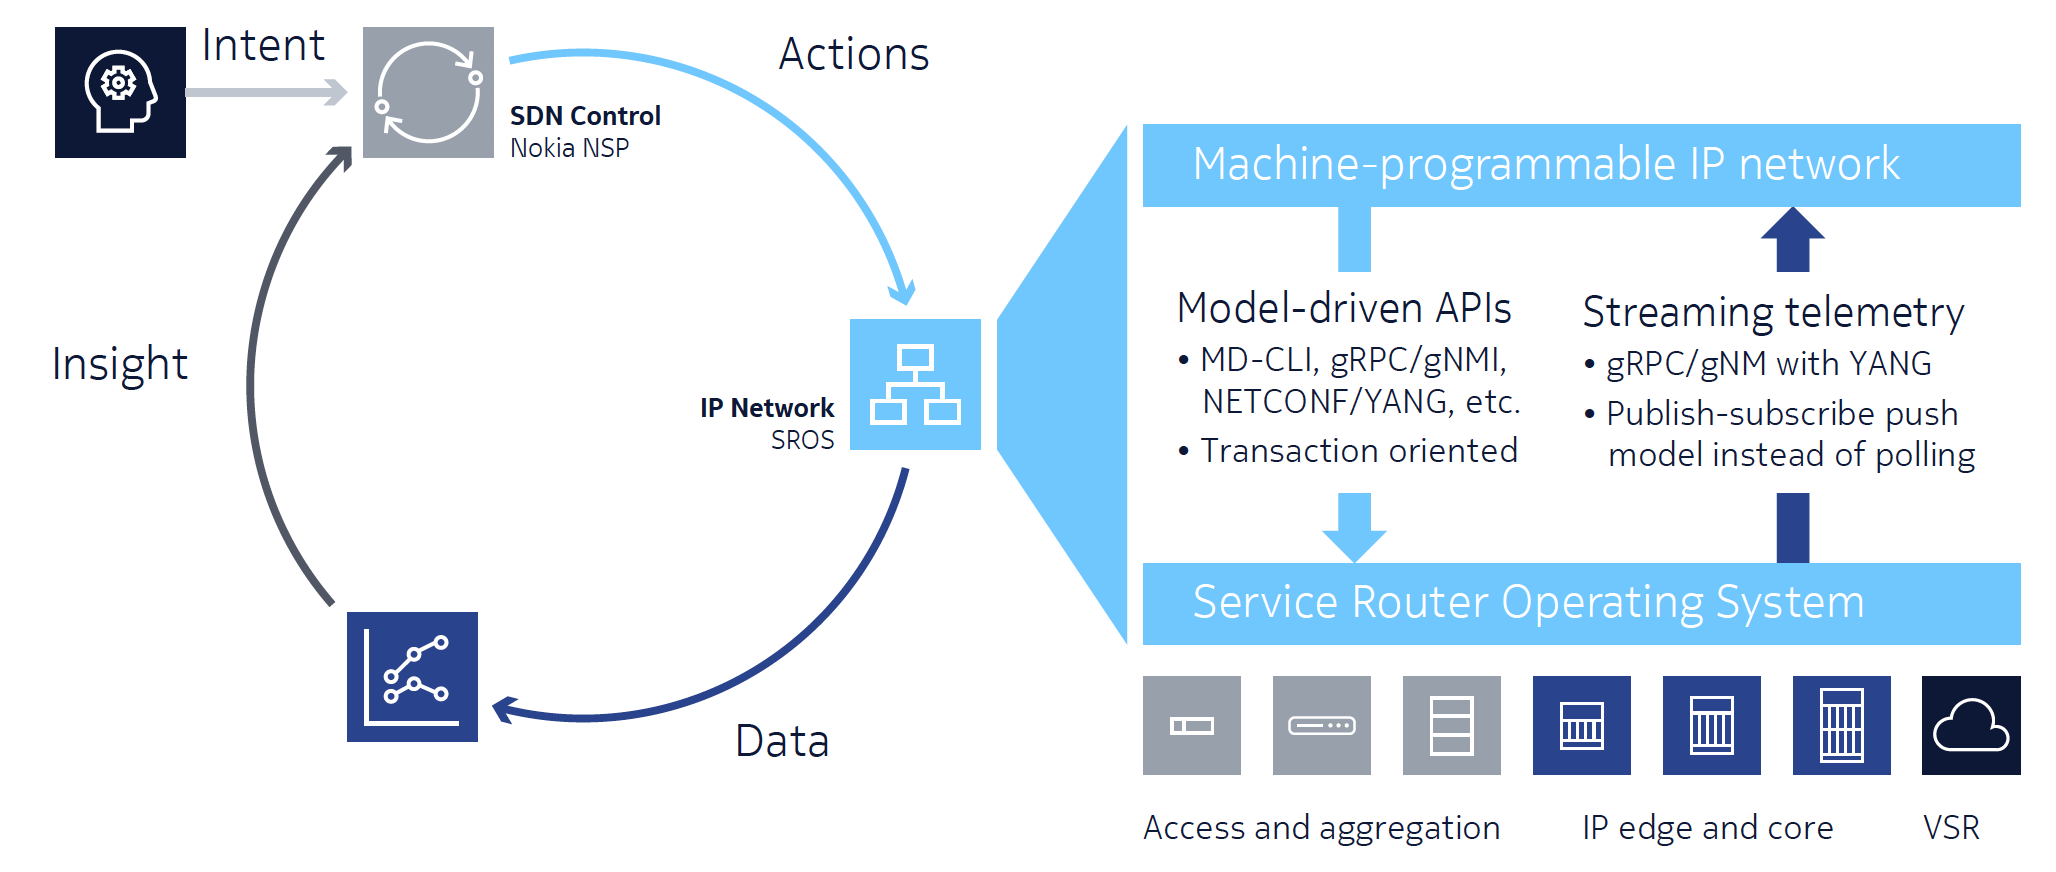 Figure 8. Nokia insight-driven IP networking